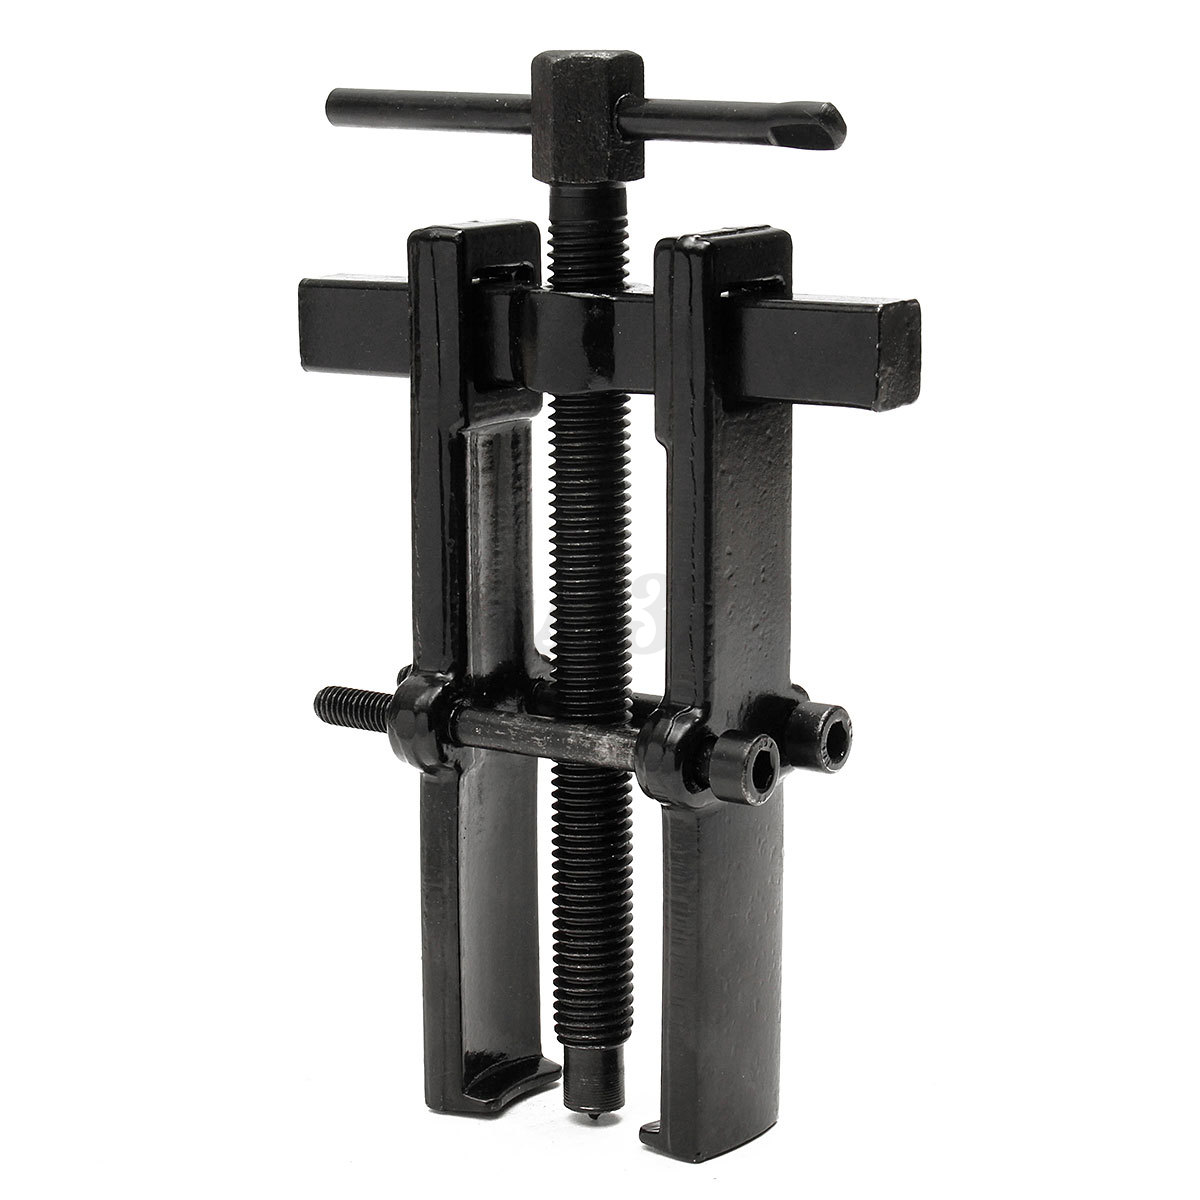 Bearing Gear Puller : Two jaw twin legs bearing gear puller remover hand tool